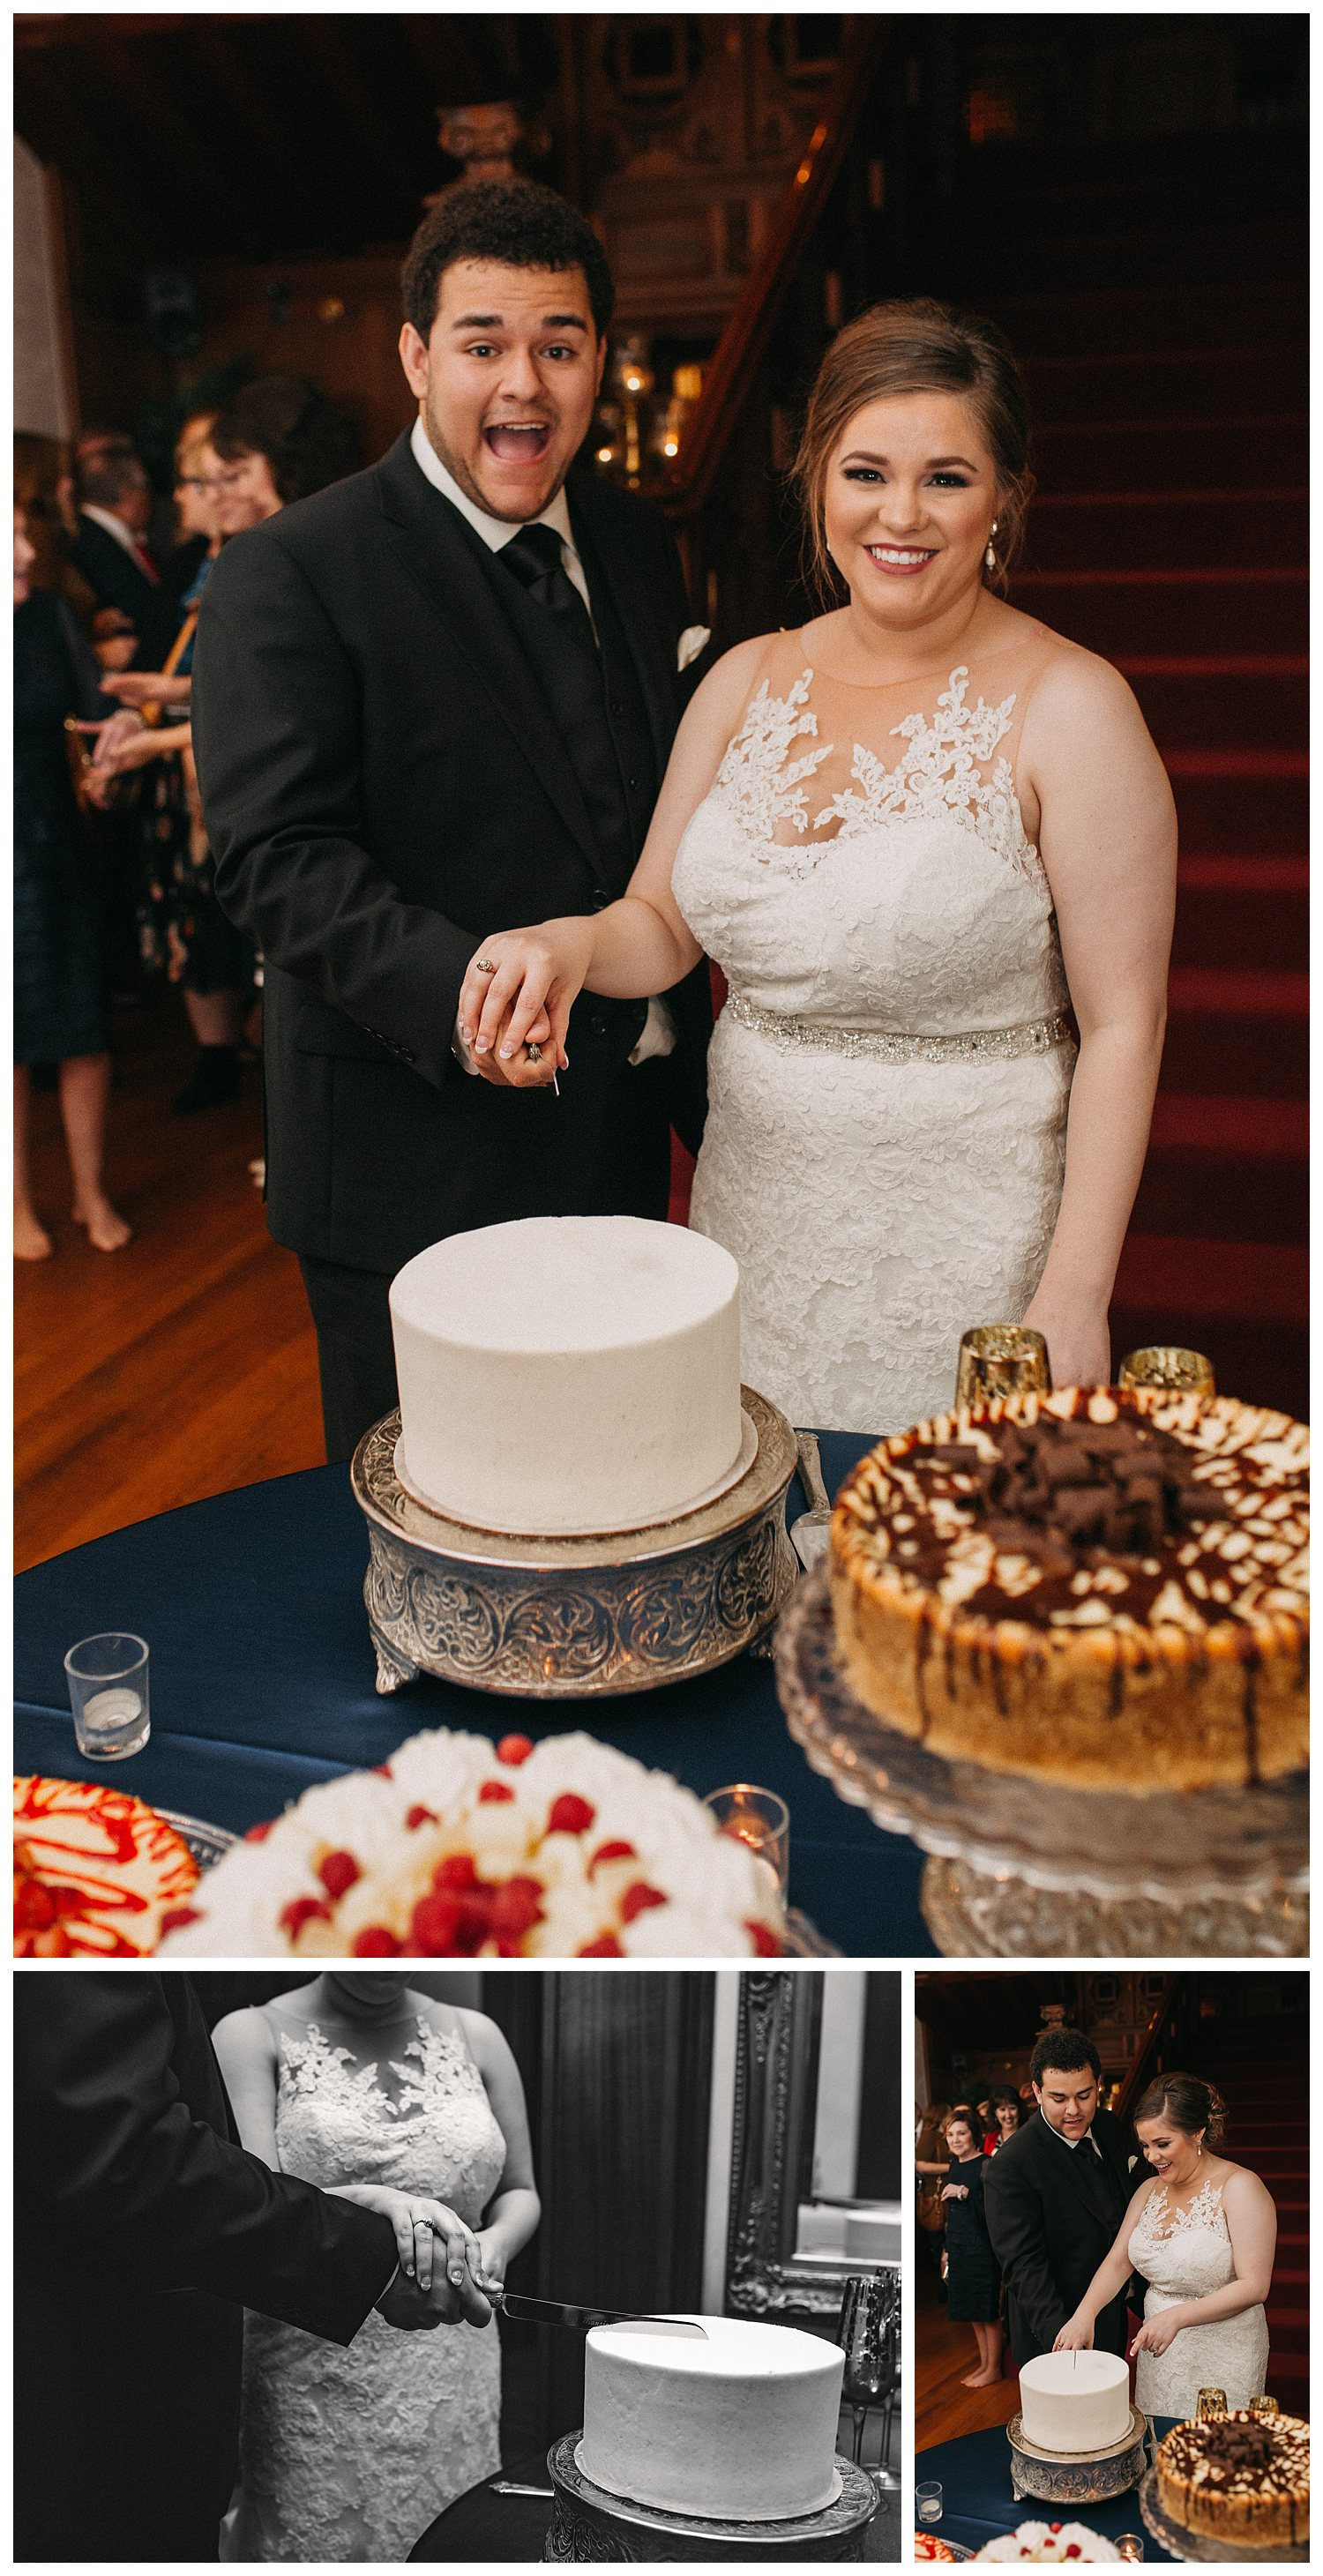 Kelsey_Diane_Photography_Loose_Mansion_Wedding_Photography_Kansas_City_Victor_Lyndsay_0160.jpg